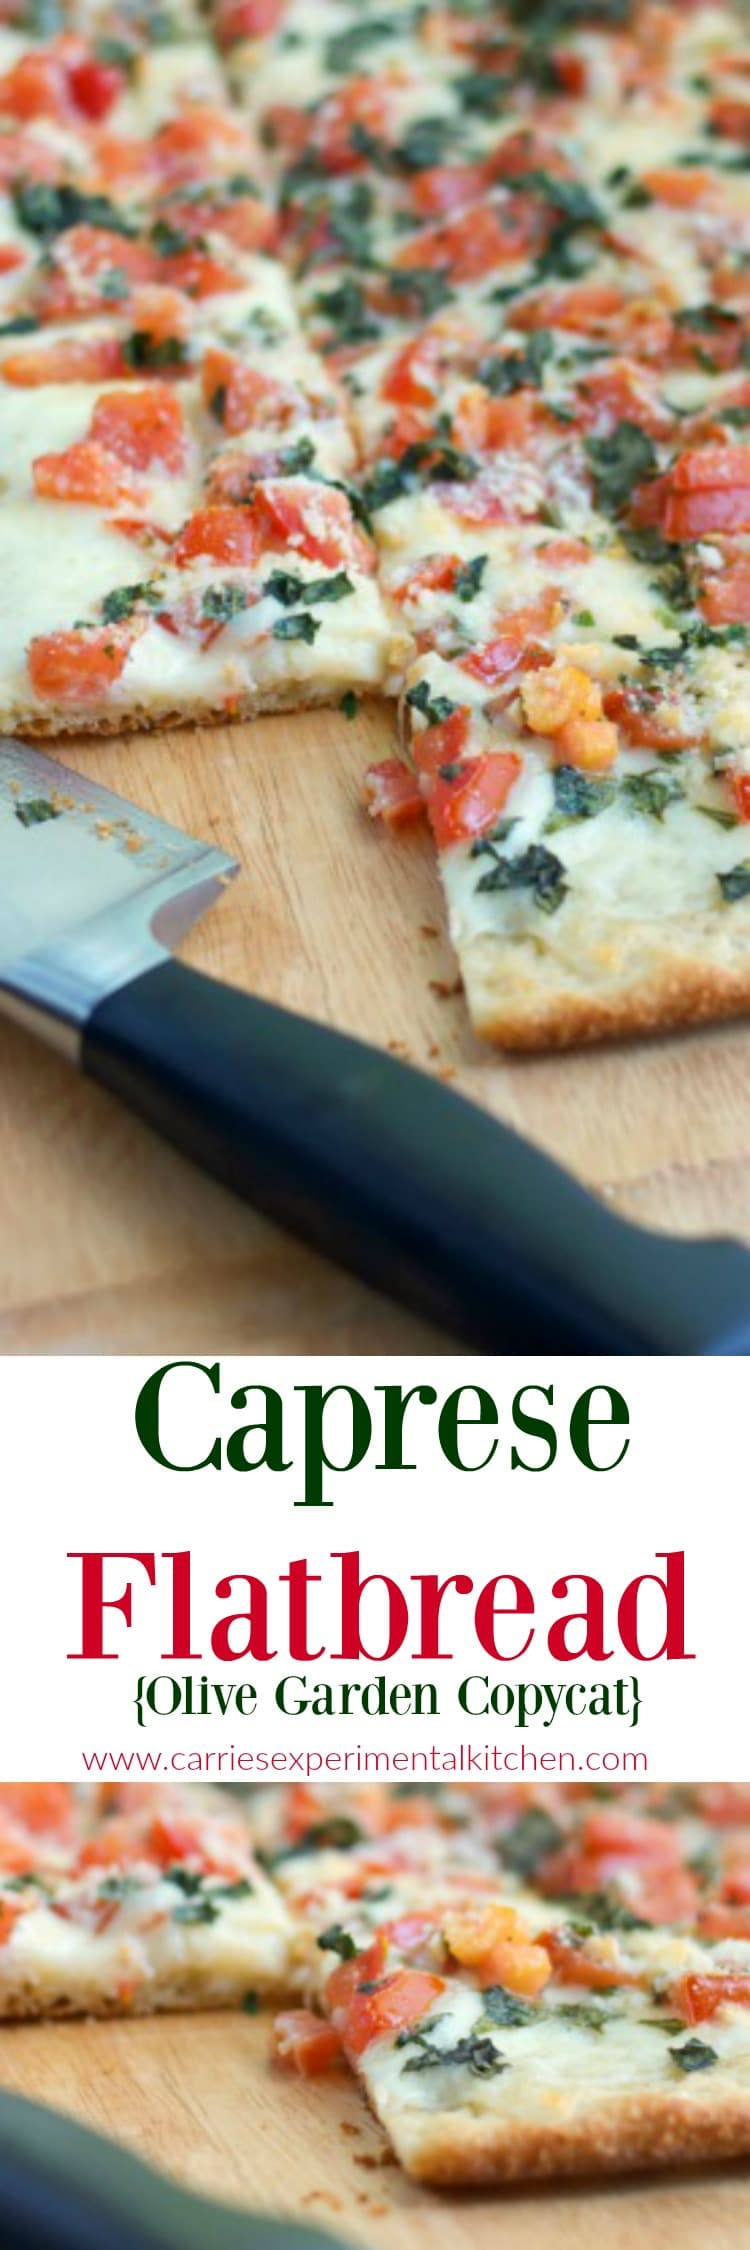 Make this Olive Garden favorite appetizer, Caprese Flatbread made with fresh tomatoes, basil and mozzarella cheese at home. Perfect for pizza night or game day snacking too!#flatbread #pizza #gameday #appetizer #meatless